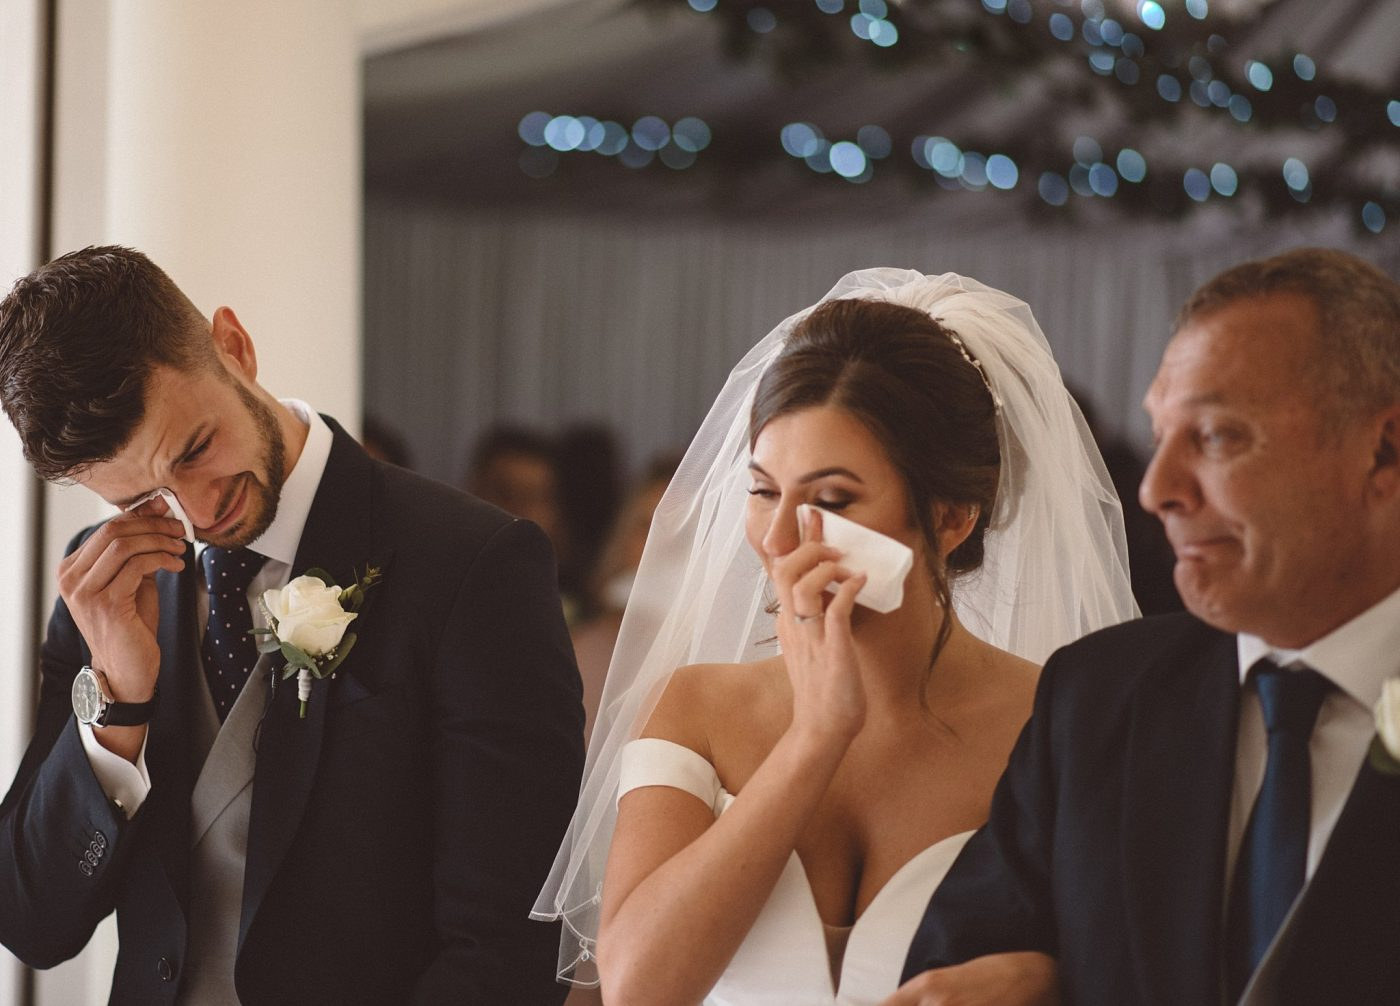 Emotional bride, groom & father of the bride